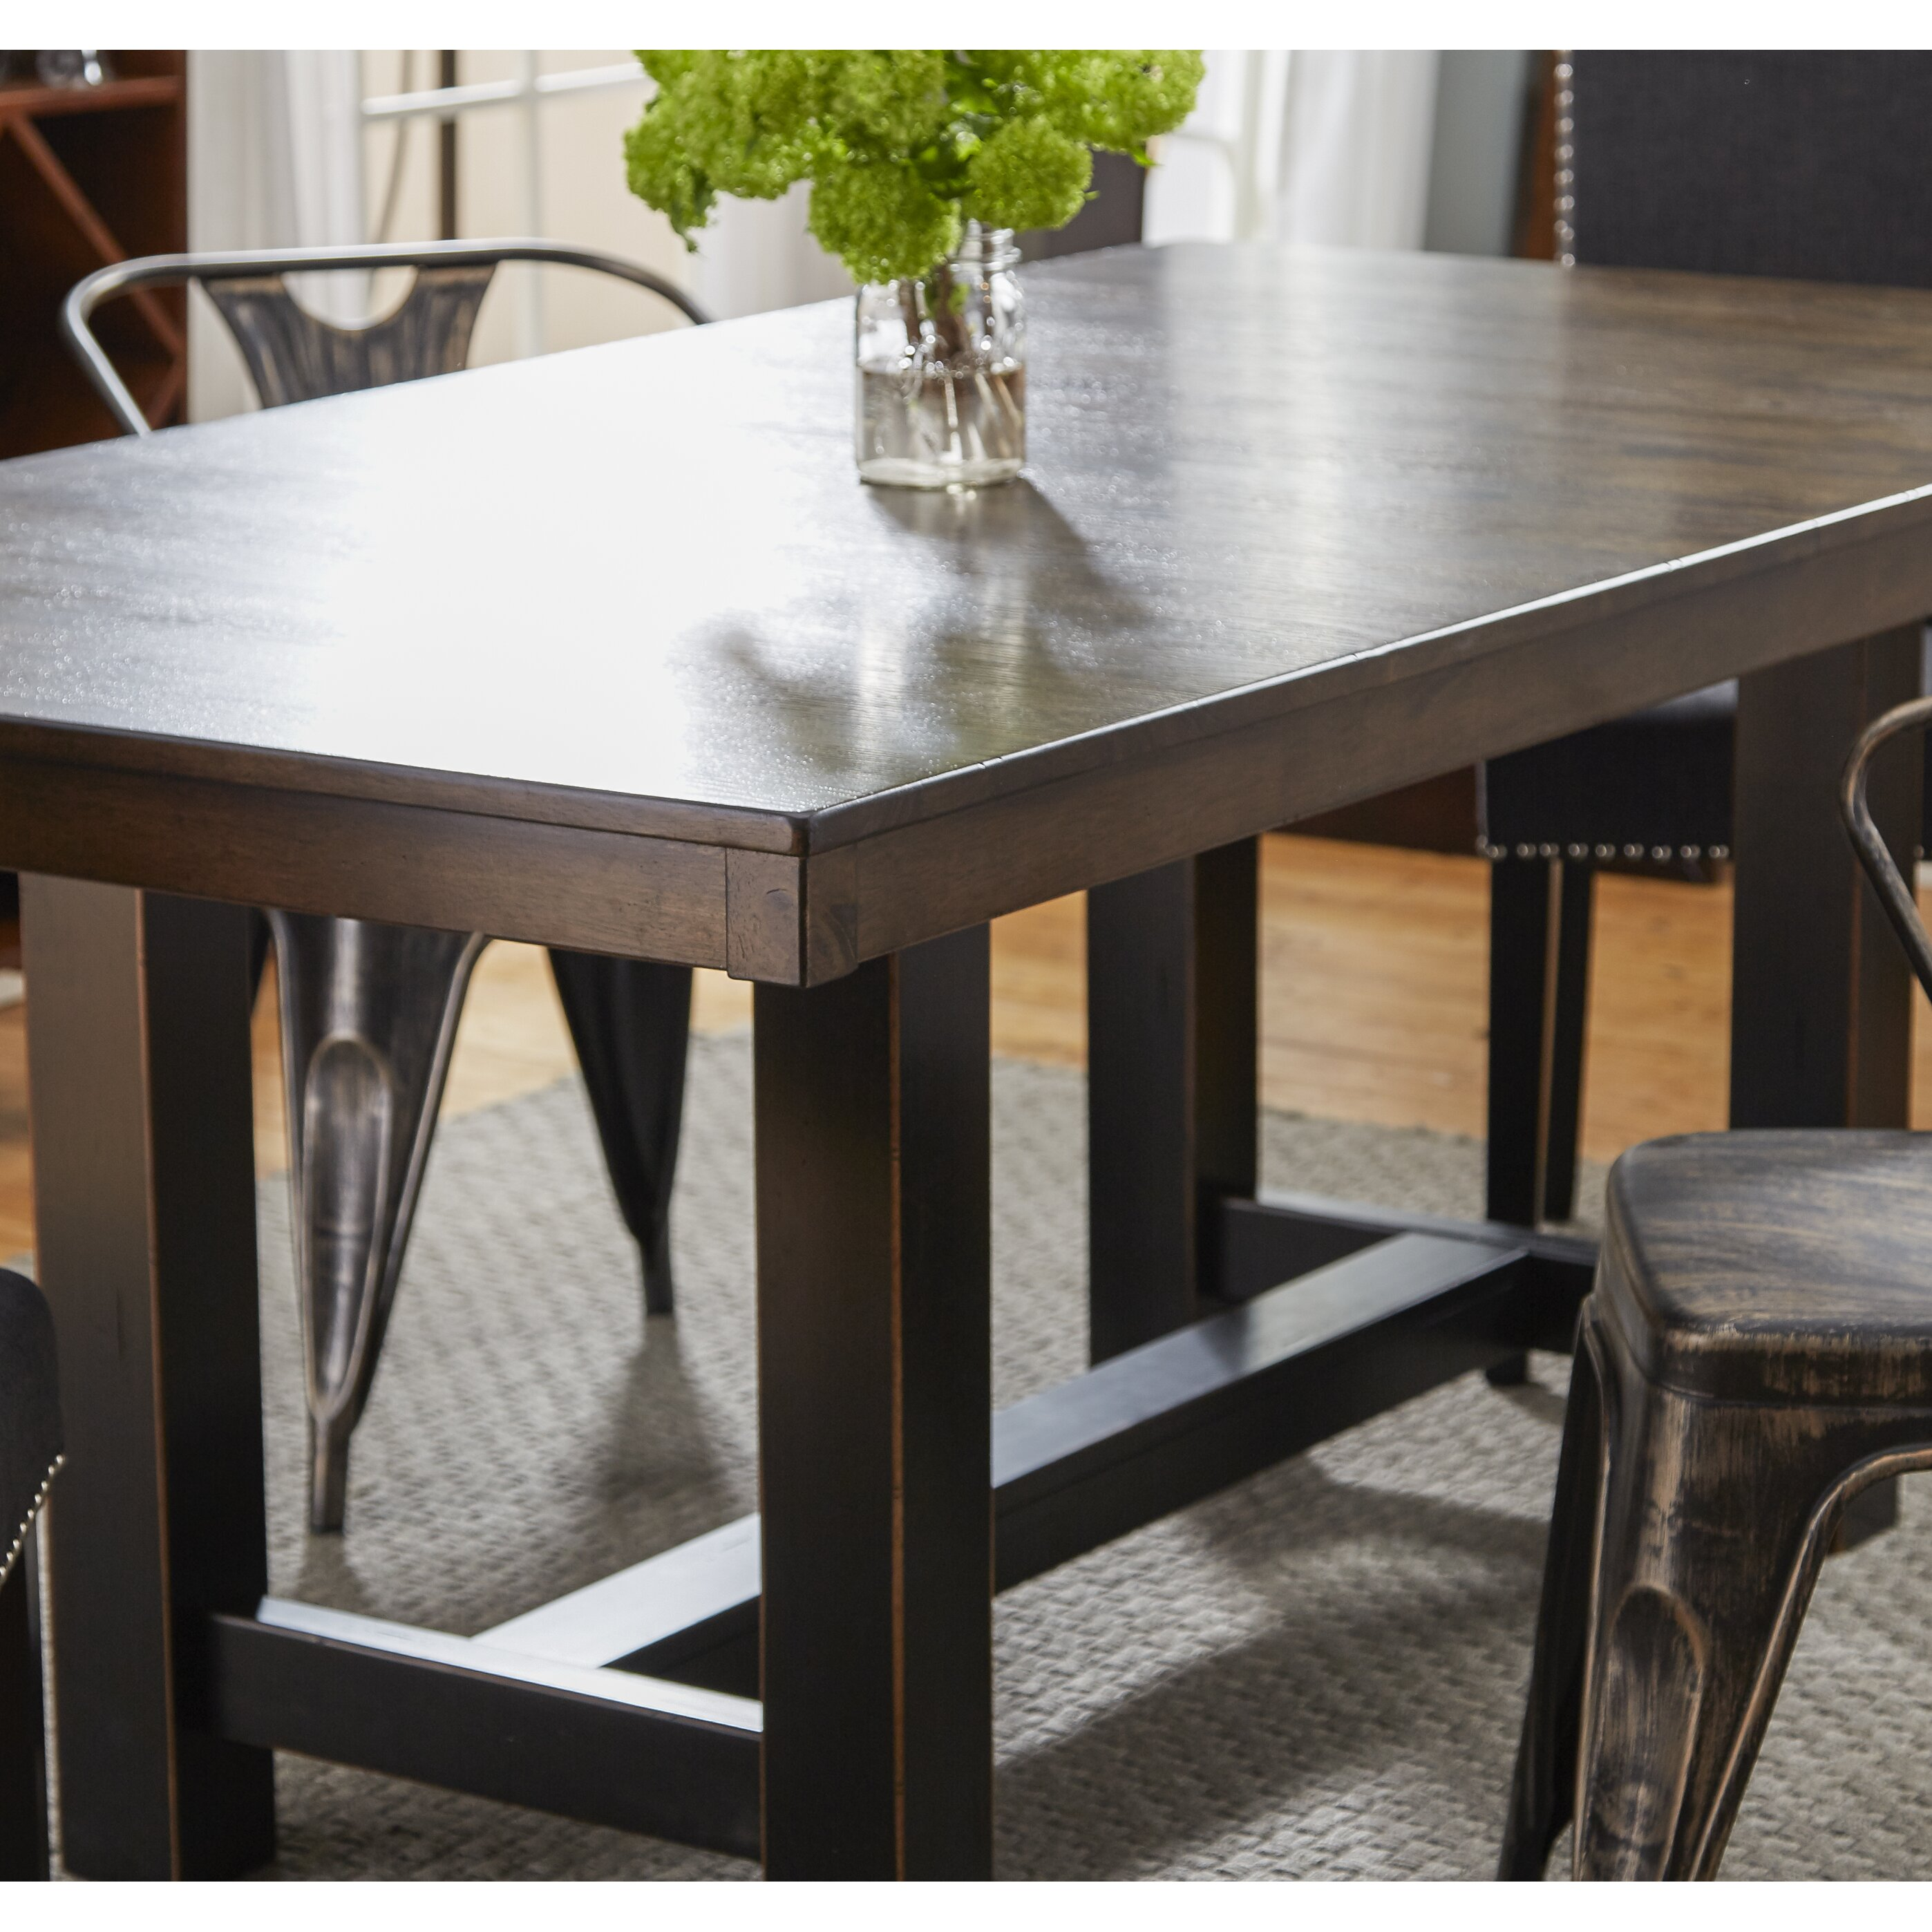 dwellstudio austin extendable dining table amp reviews wayfair dining room tables austin turquoise dining chairs teal